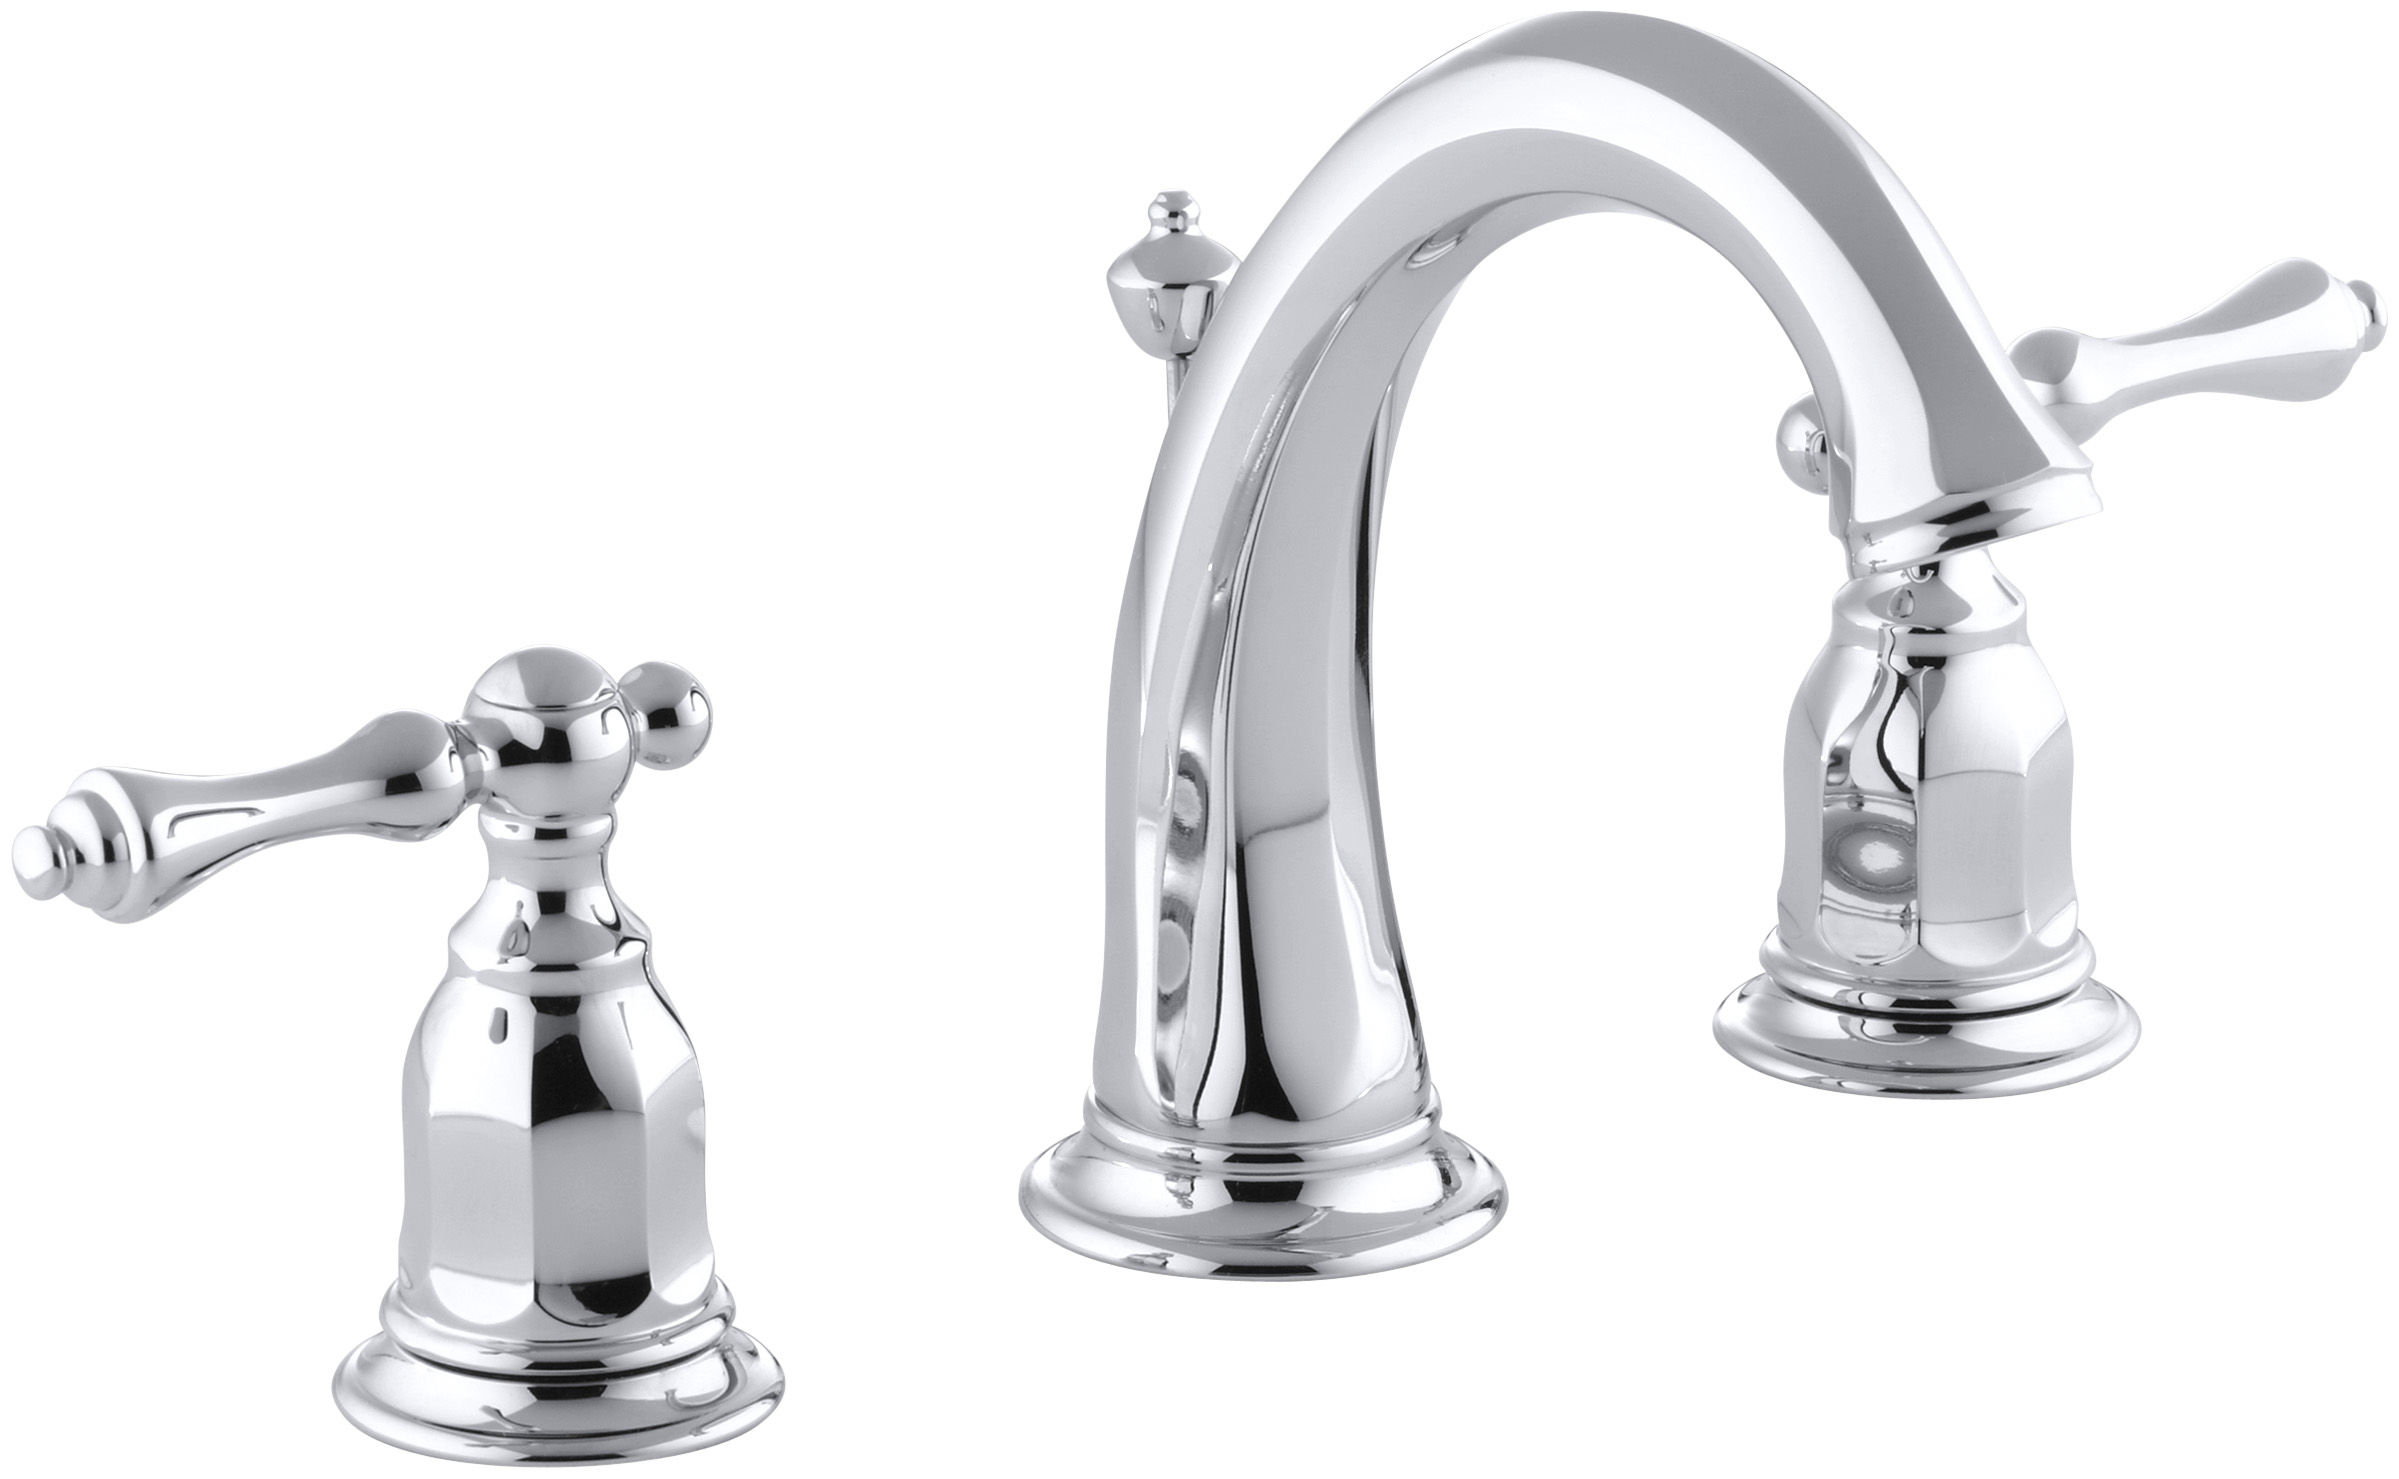 premium bathroom miseno quality faucetmodels kitchen faucet model artisan faucets manufacturing